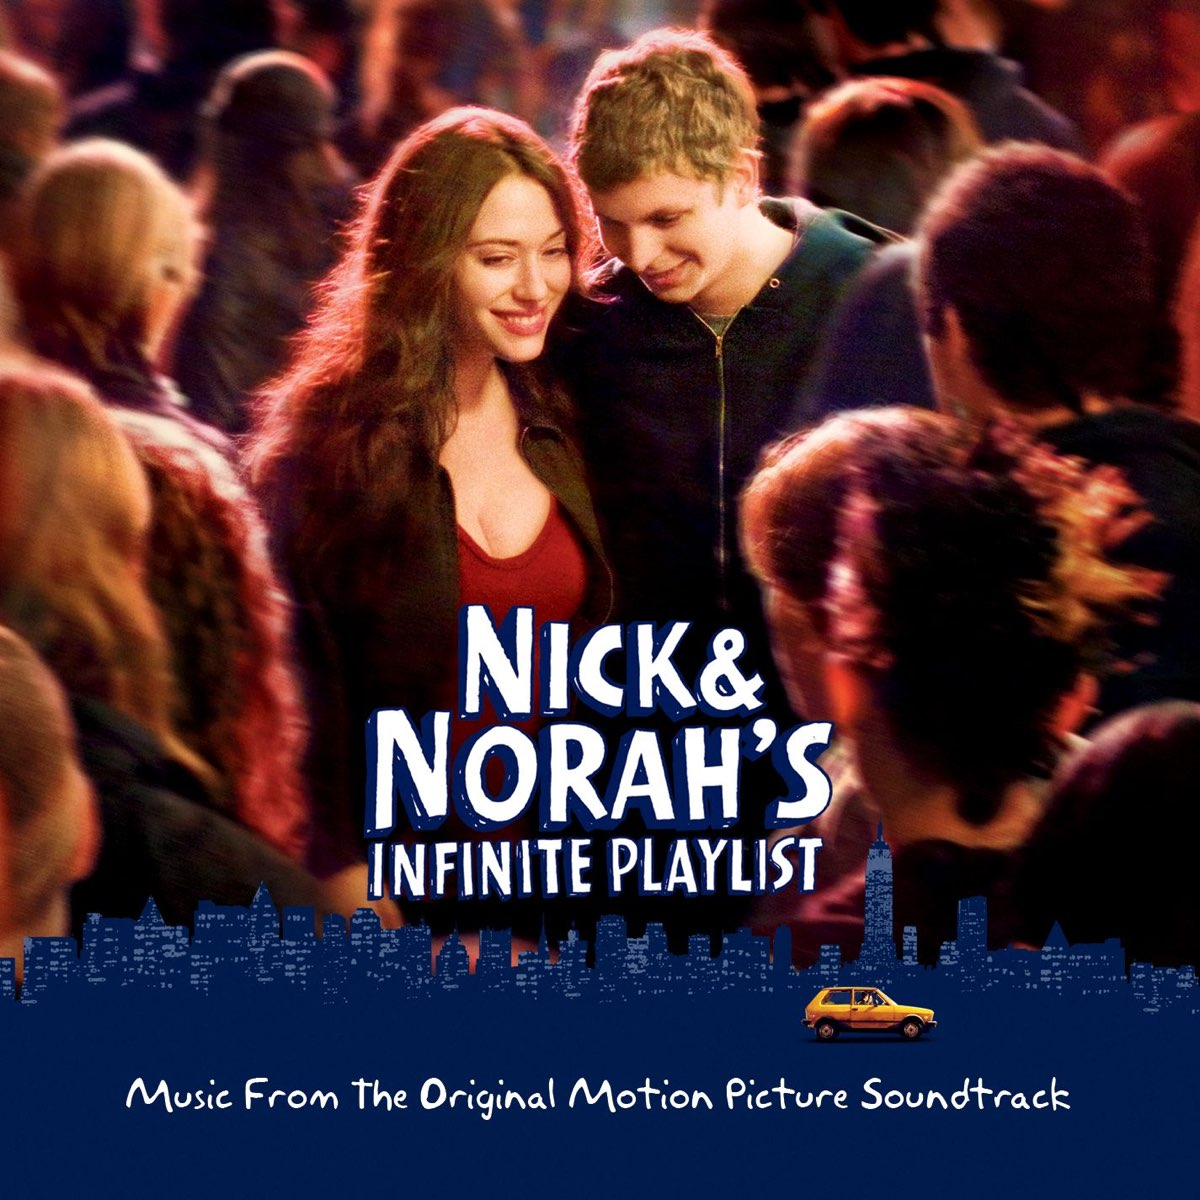 """movie soundtracks, The movie soundtrack - """"After Hours"""" by We Are Scientists from Nick & Norah's Infinite Playlist (2008)"""